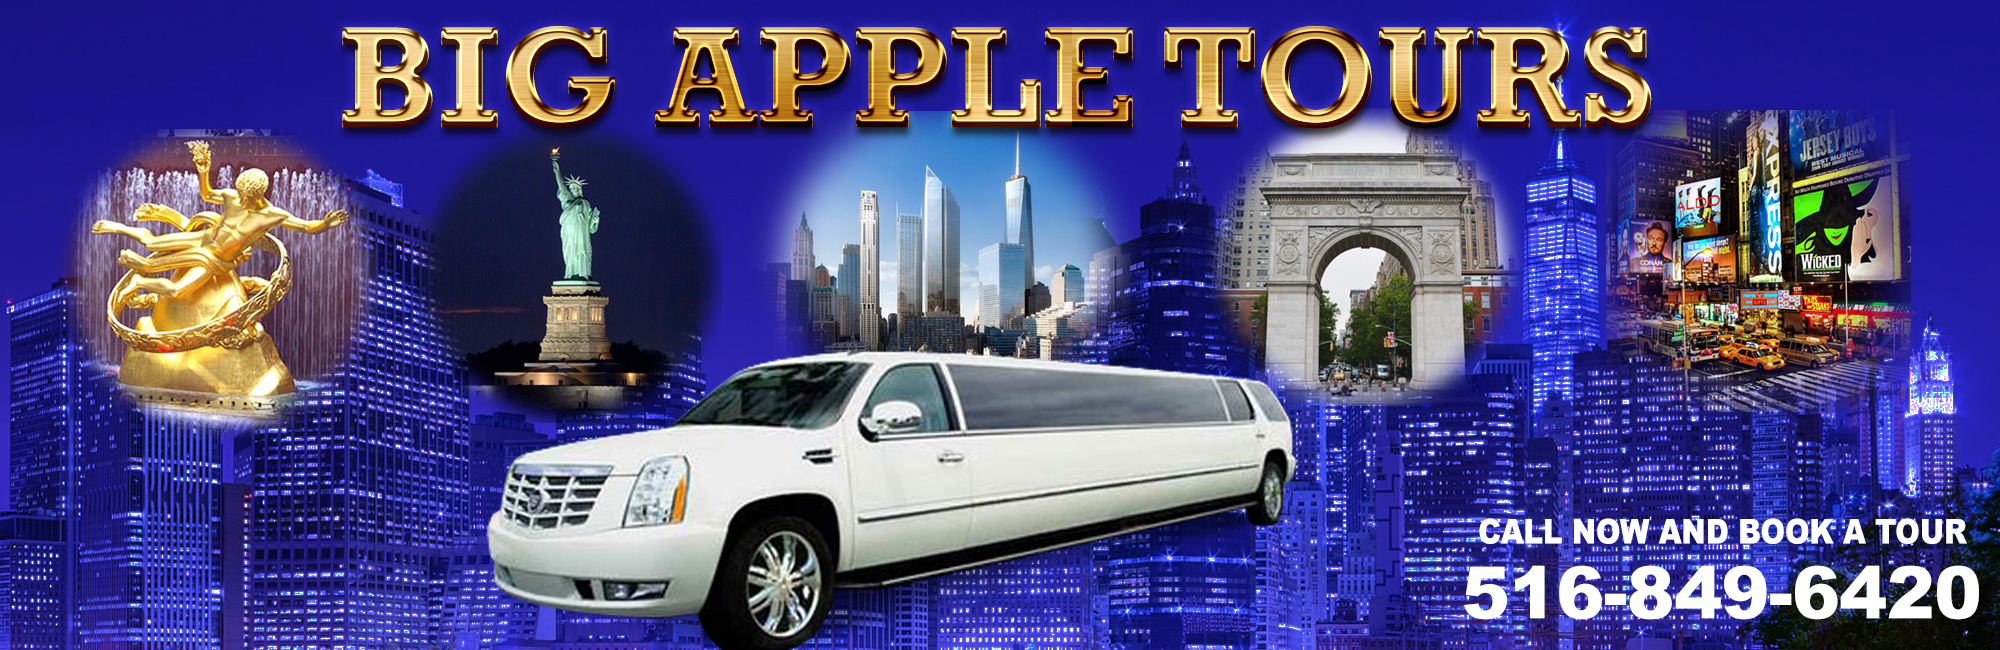 JD's Limousine Big Apple Tours